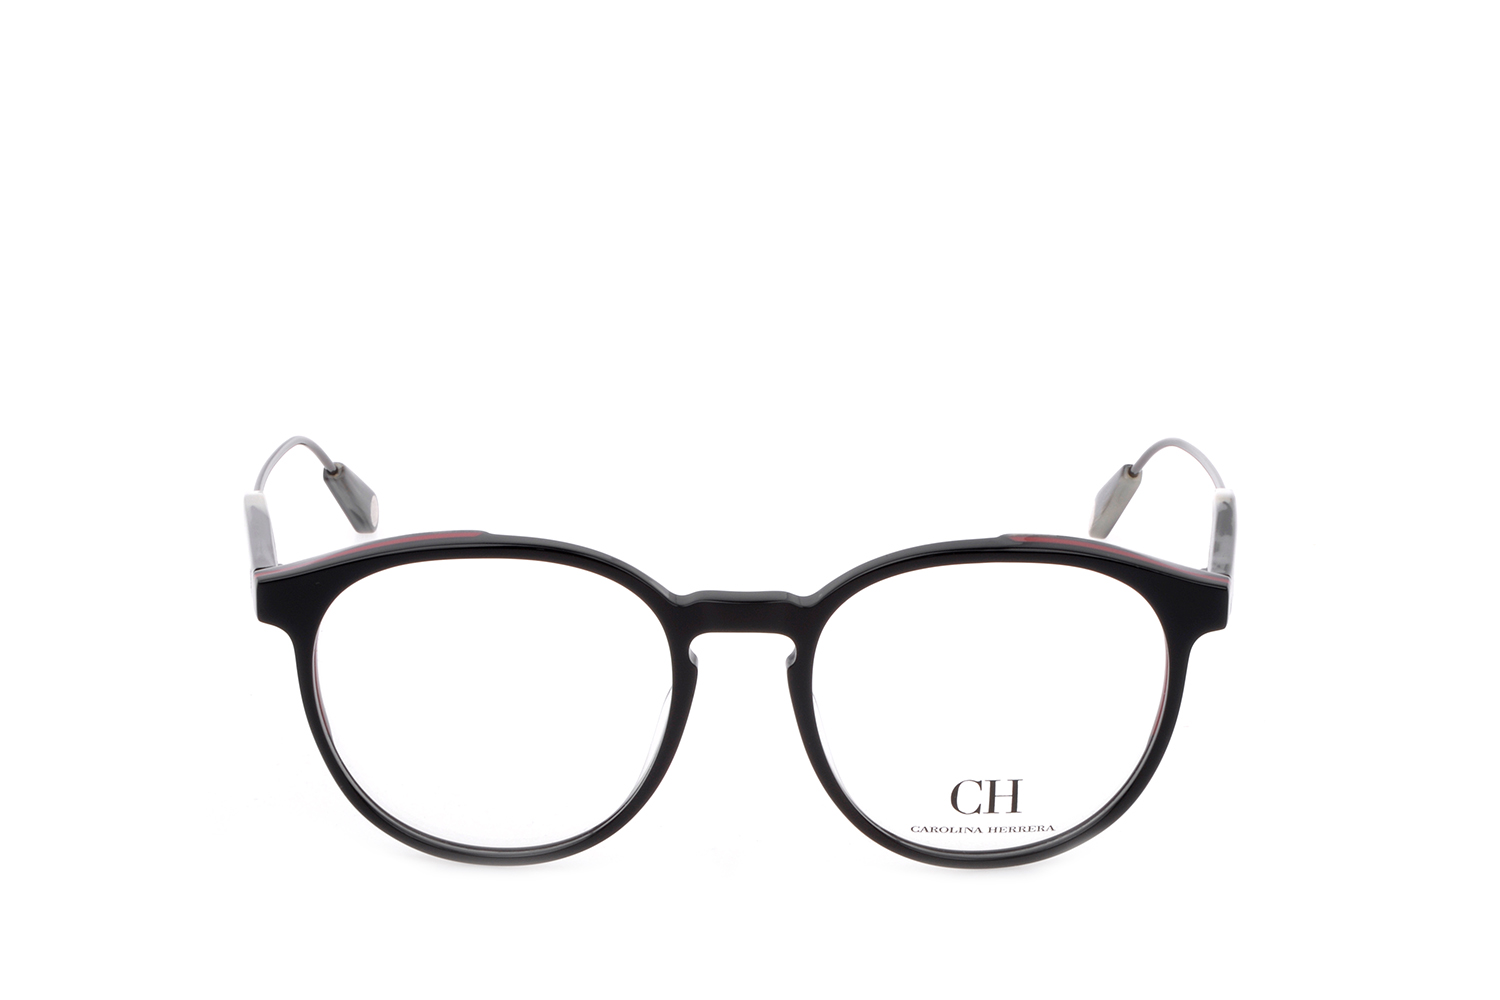 ch carolina herrera eyewear men front